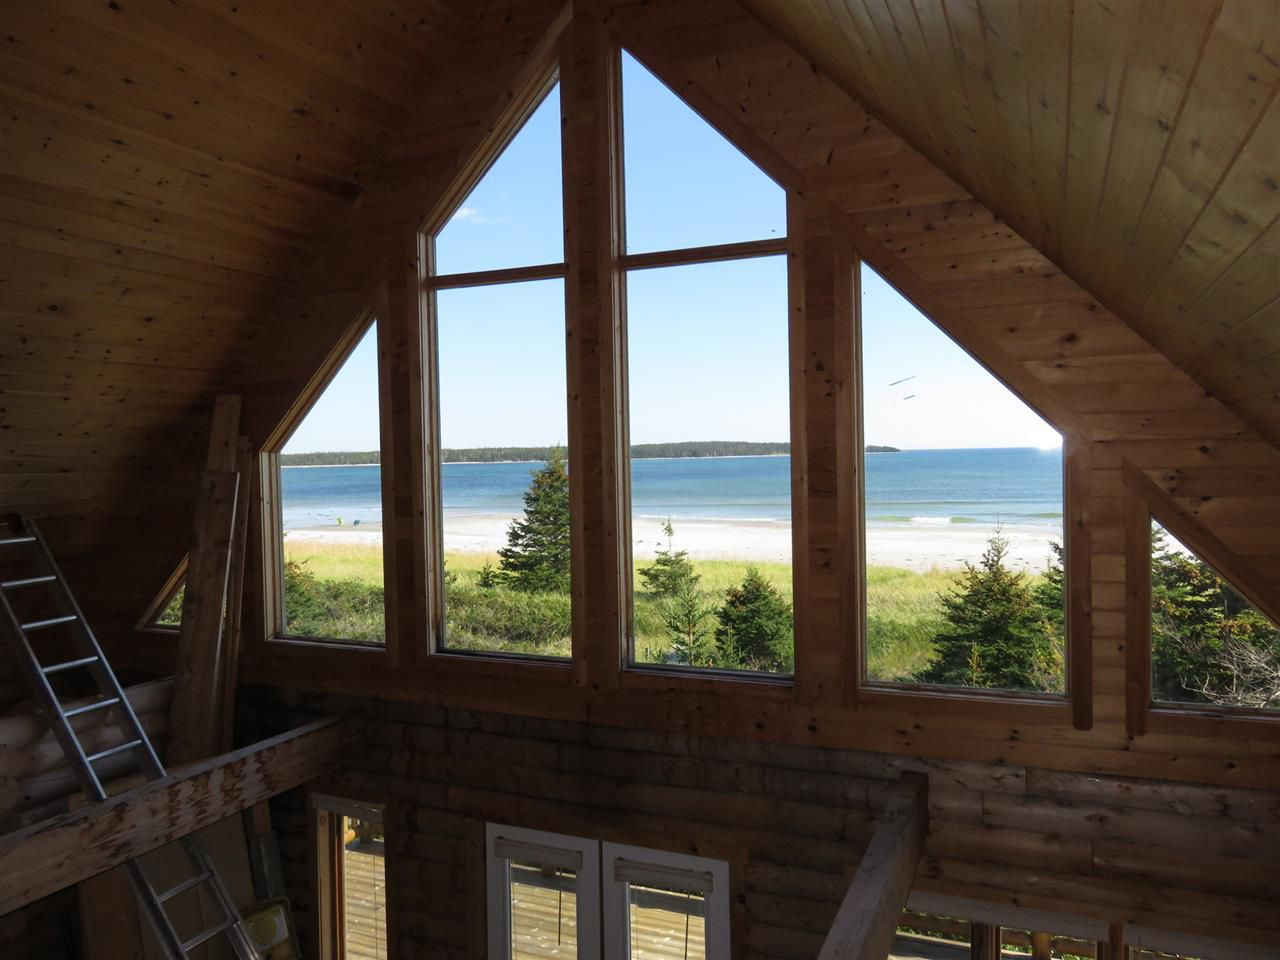 Photo 27: Photos: 198 SEASIDE Drive in Louis Head: 407-Shelburne County Residential for sale (South Shore)  : MLS®# 4686576